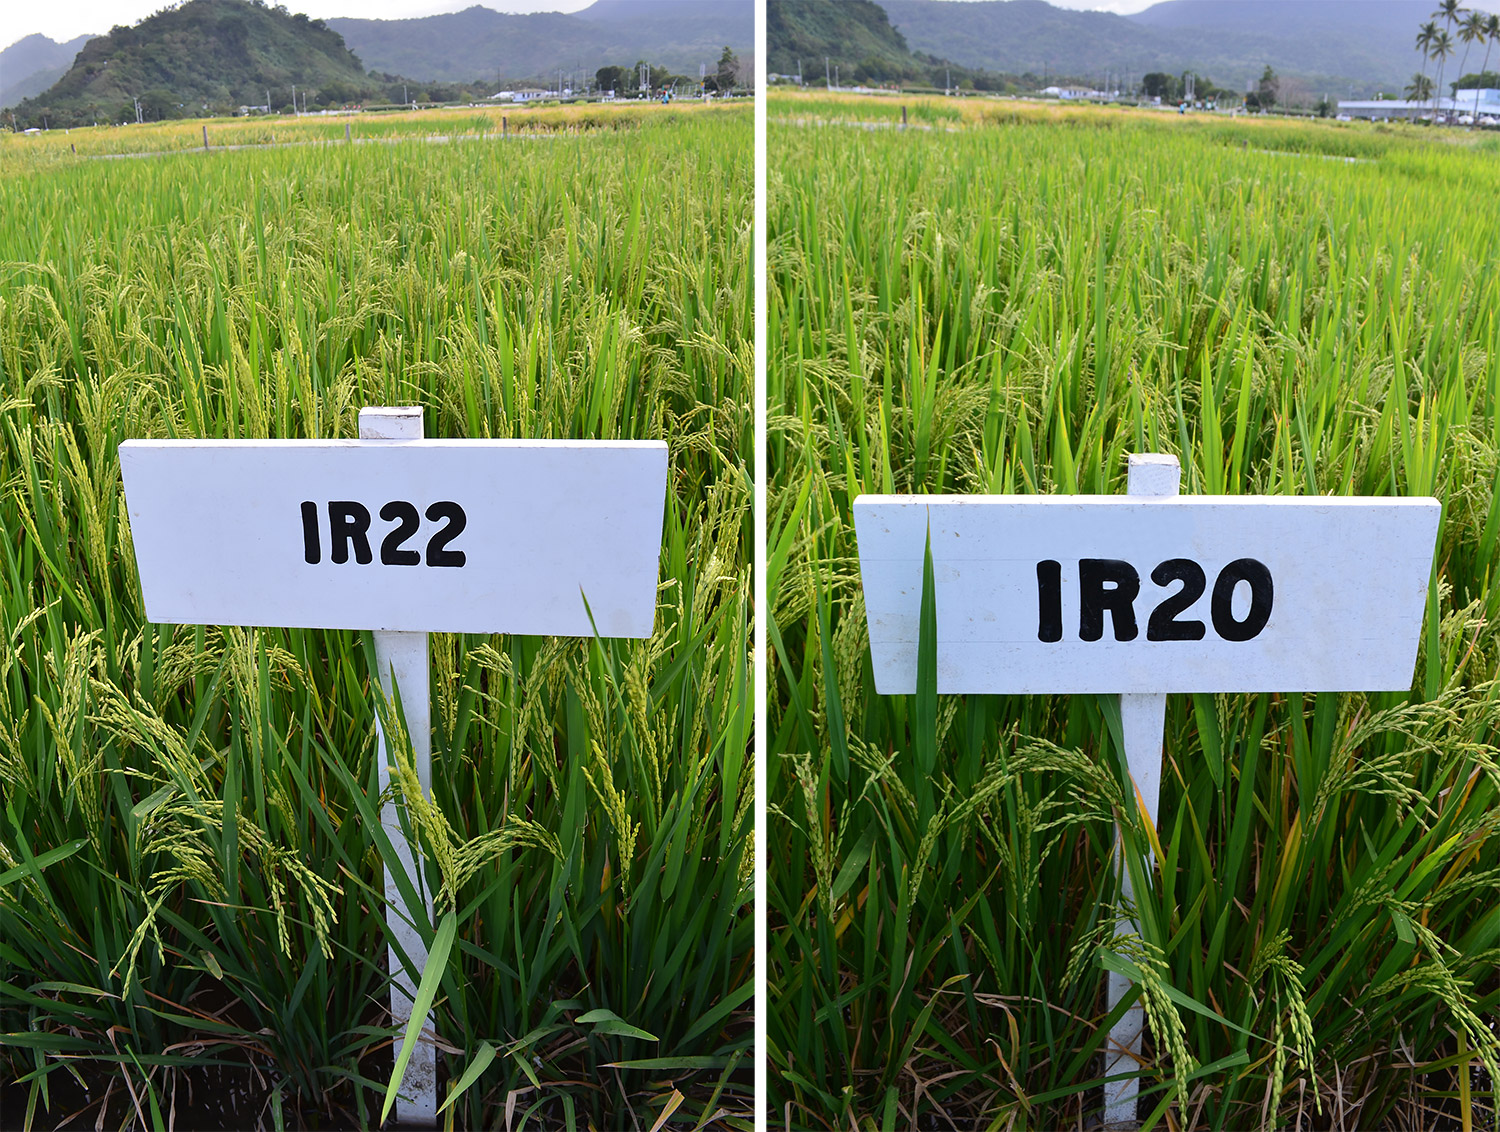 IR22 has a long, slender, translucent grain in contrast with the bold and chalky grain of IR8. IR20 has a medium-long, slender grain with little chalkiness. Its particular value is its disease and insect resistance.  (Photo: IRRI)